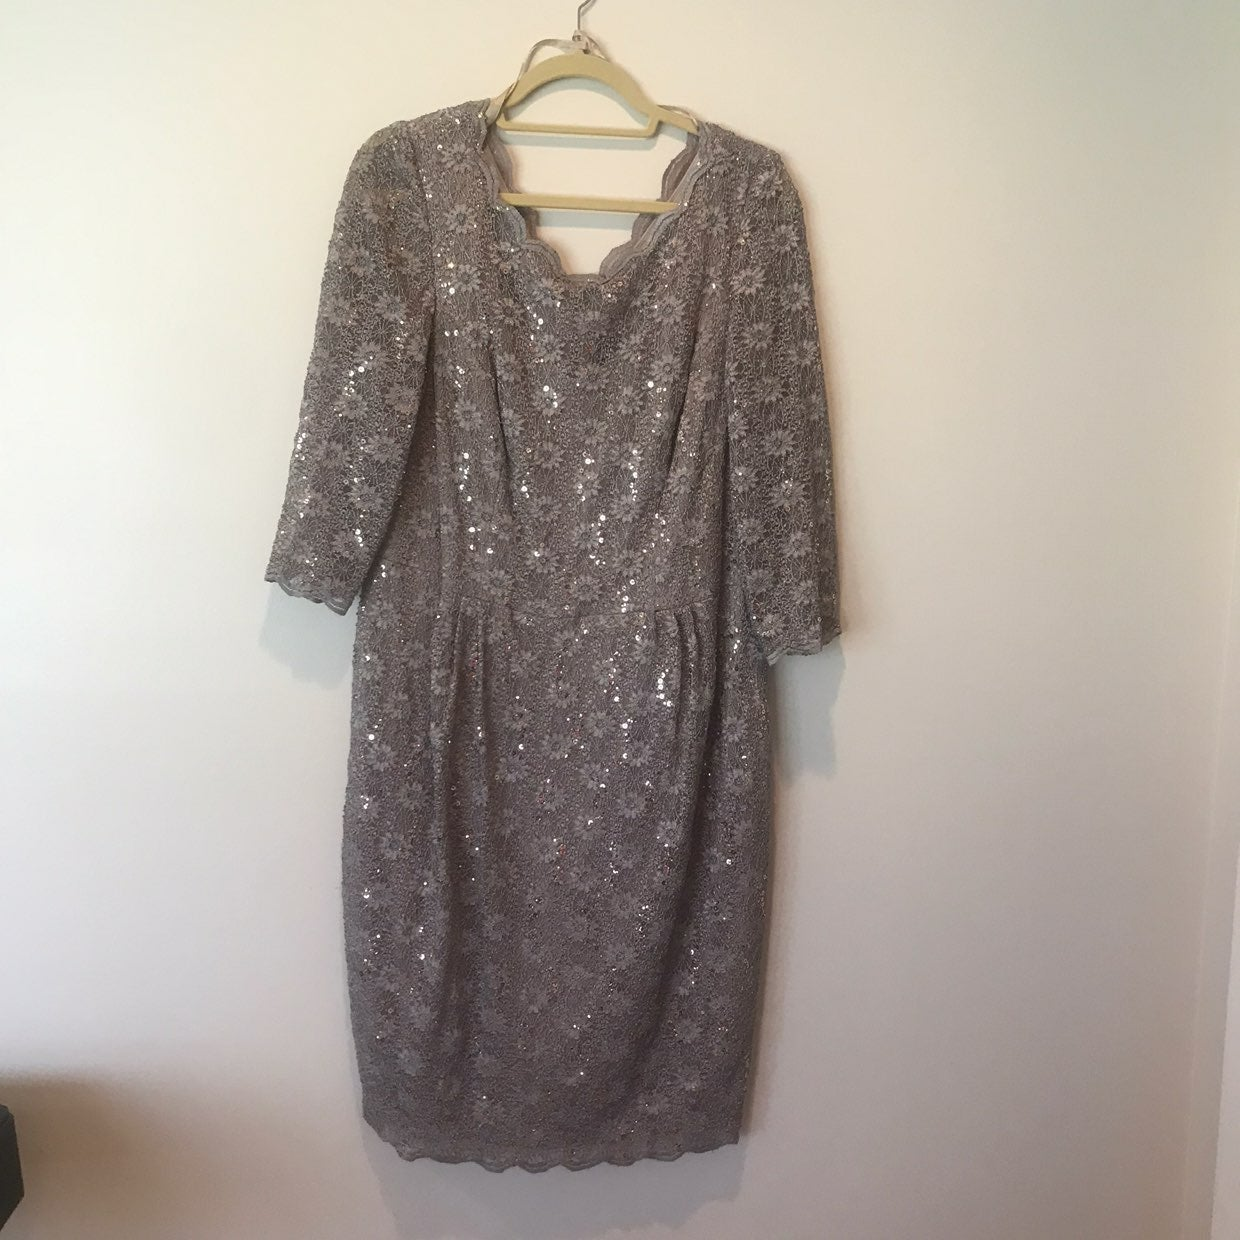 EUC! Formal Taupe Lace & Sequin Dress